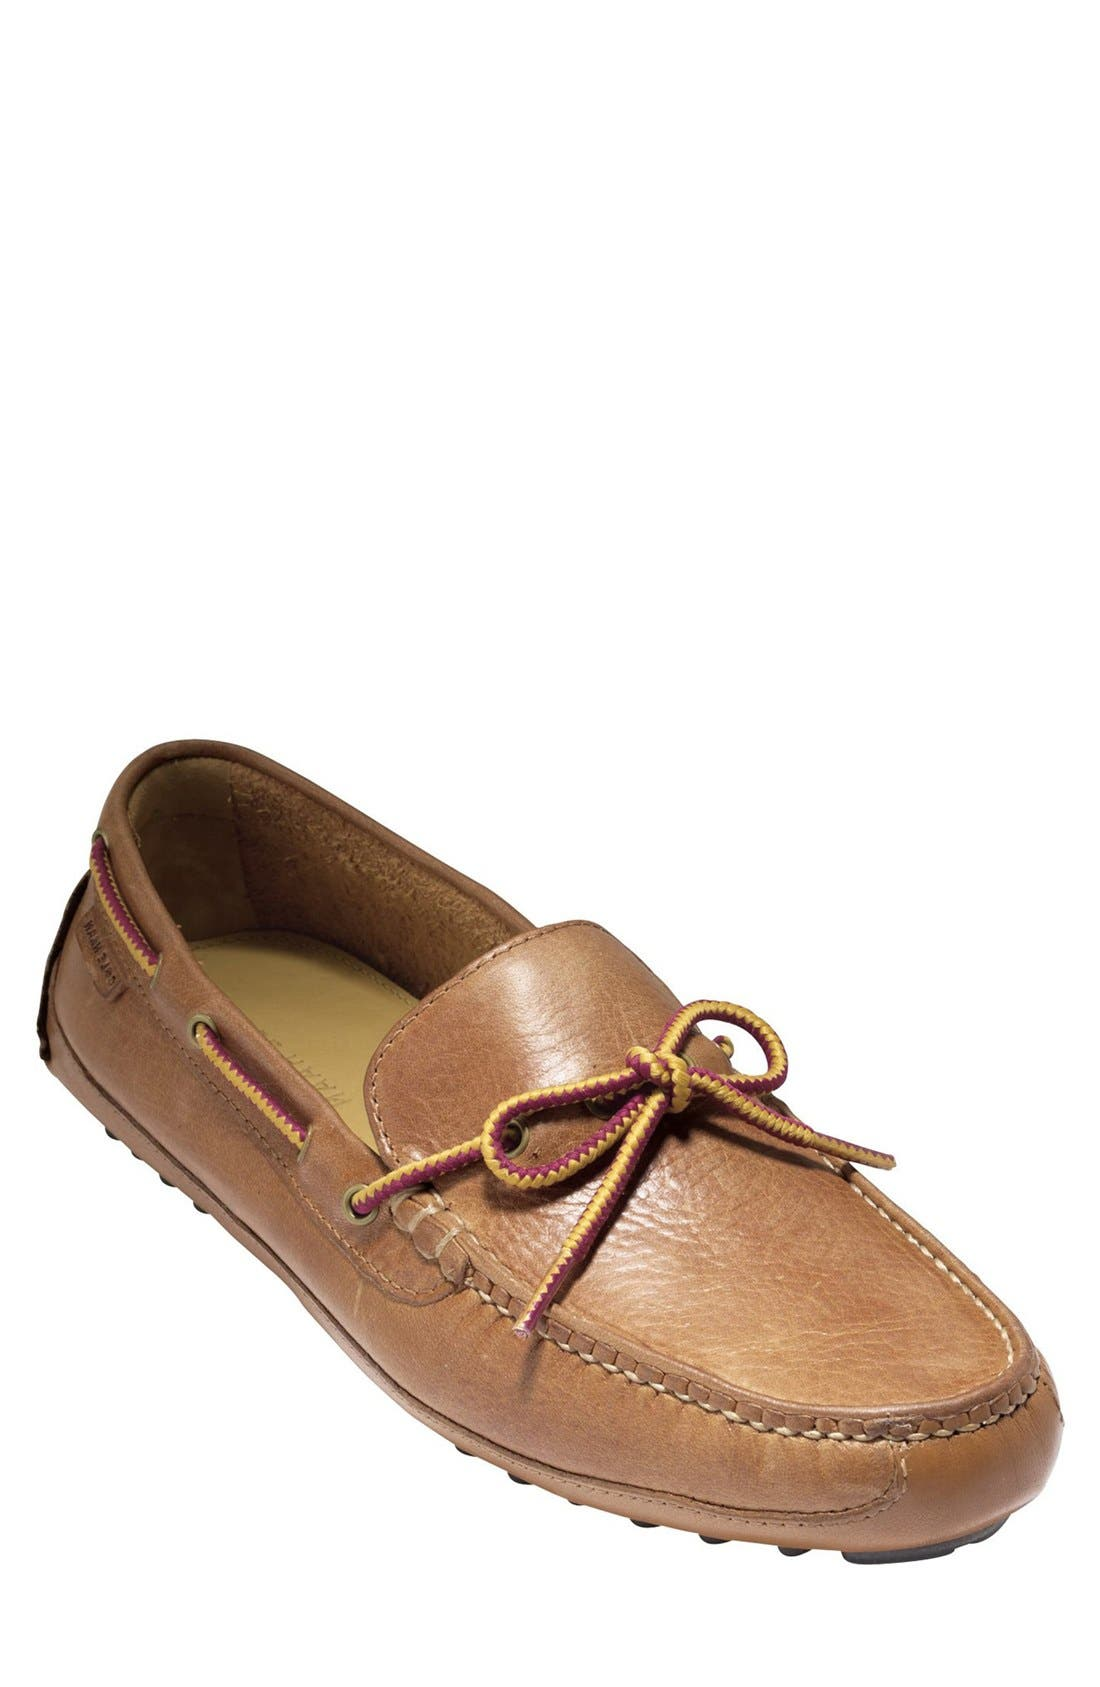 'Grant Canoe Camp' Driving Moccasin,                         Main,                         color, British Tan